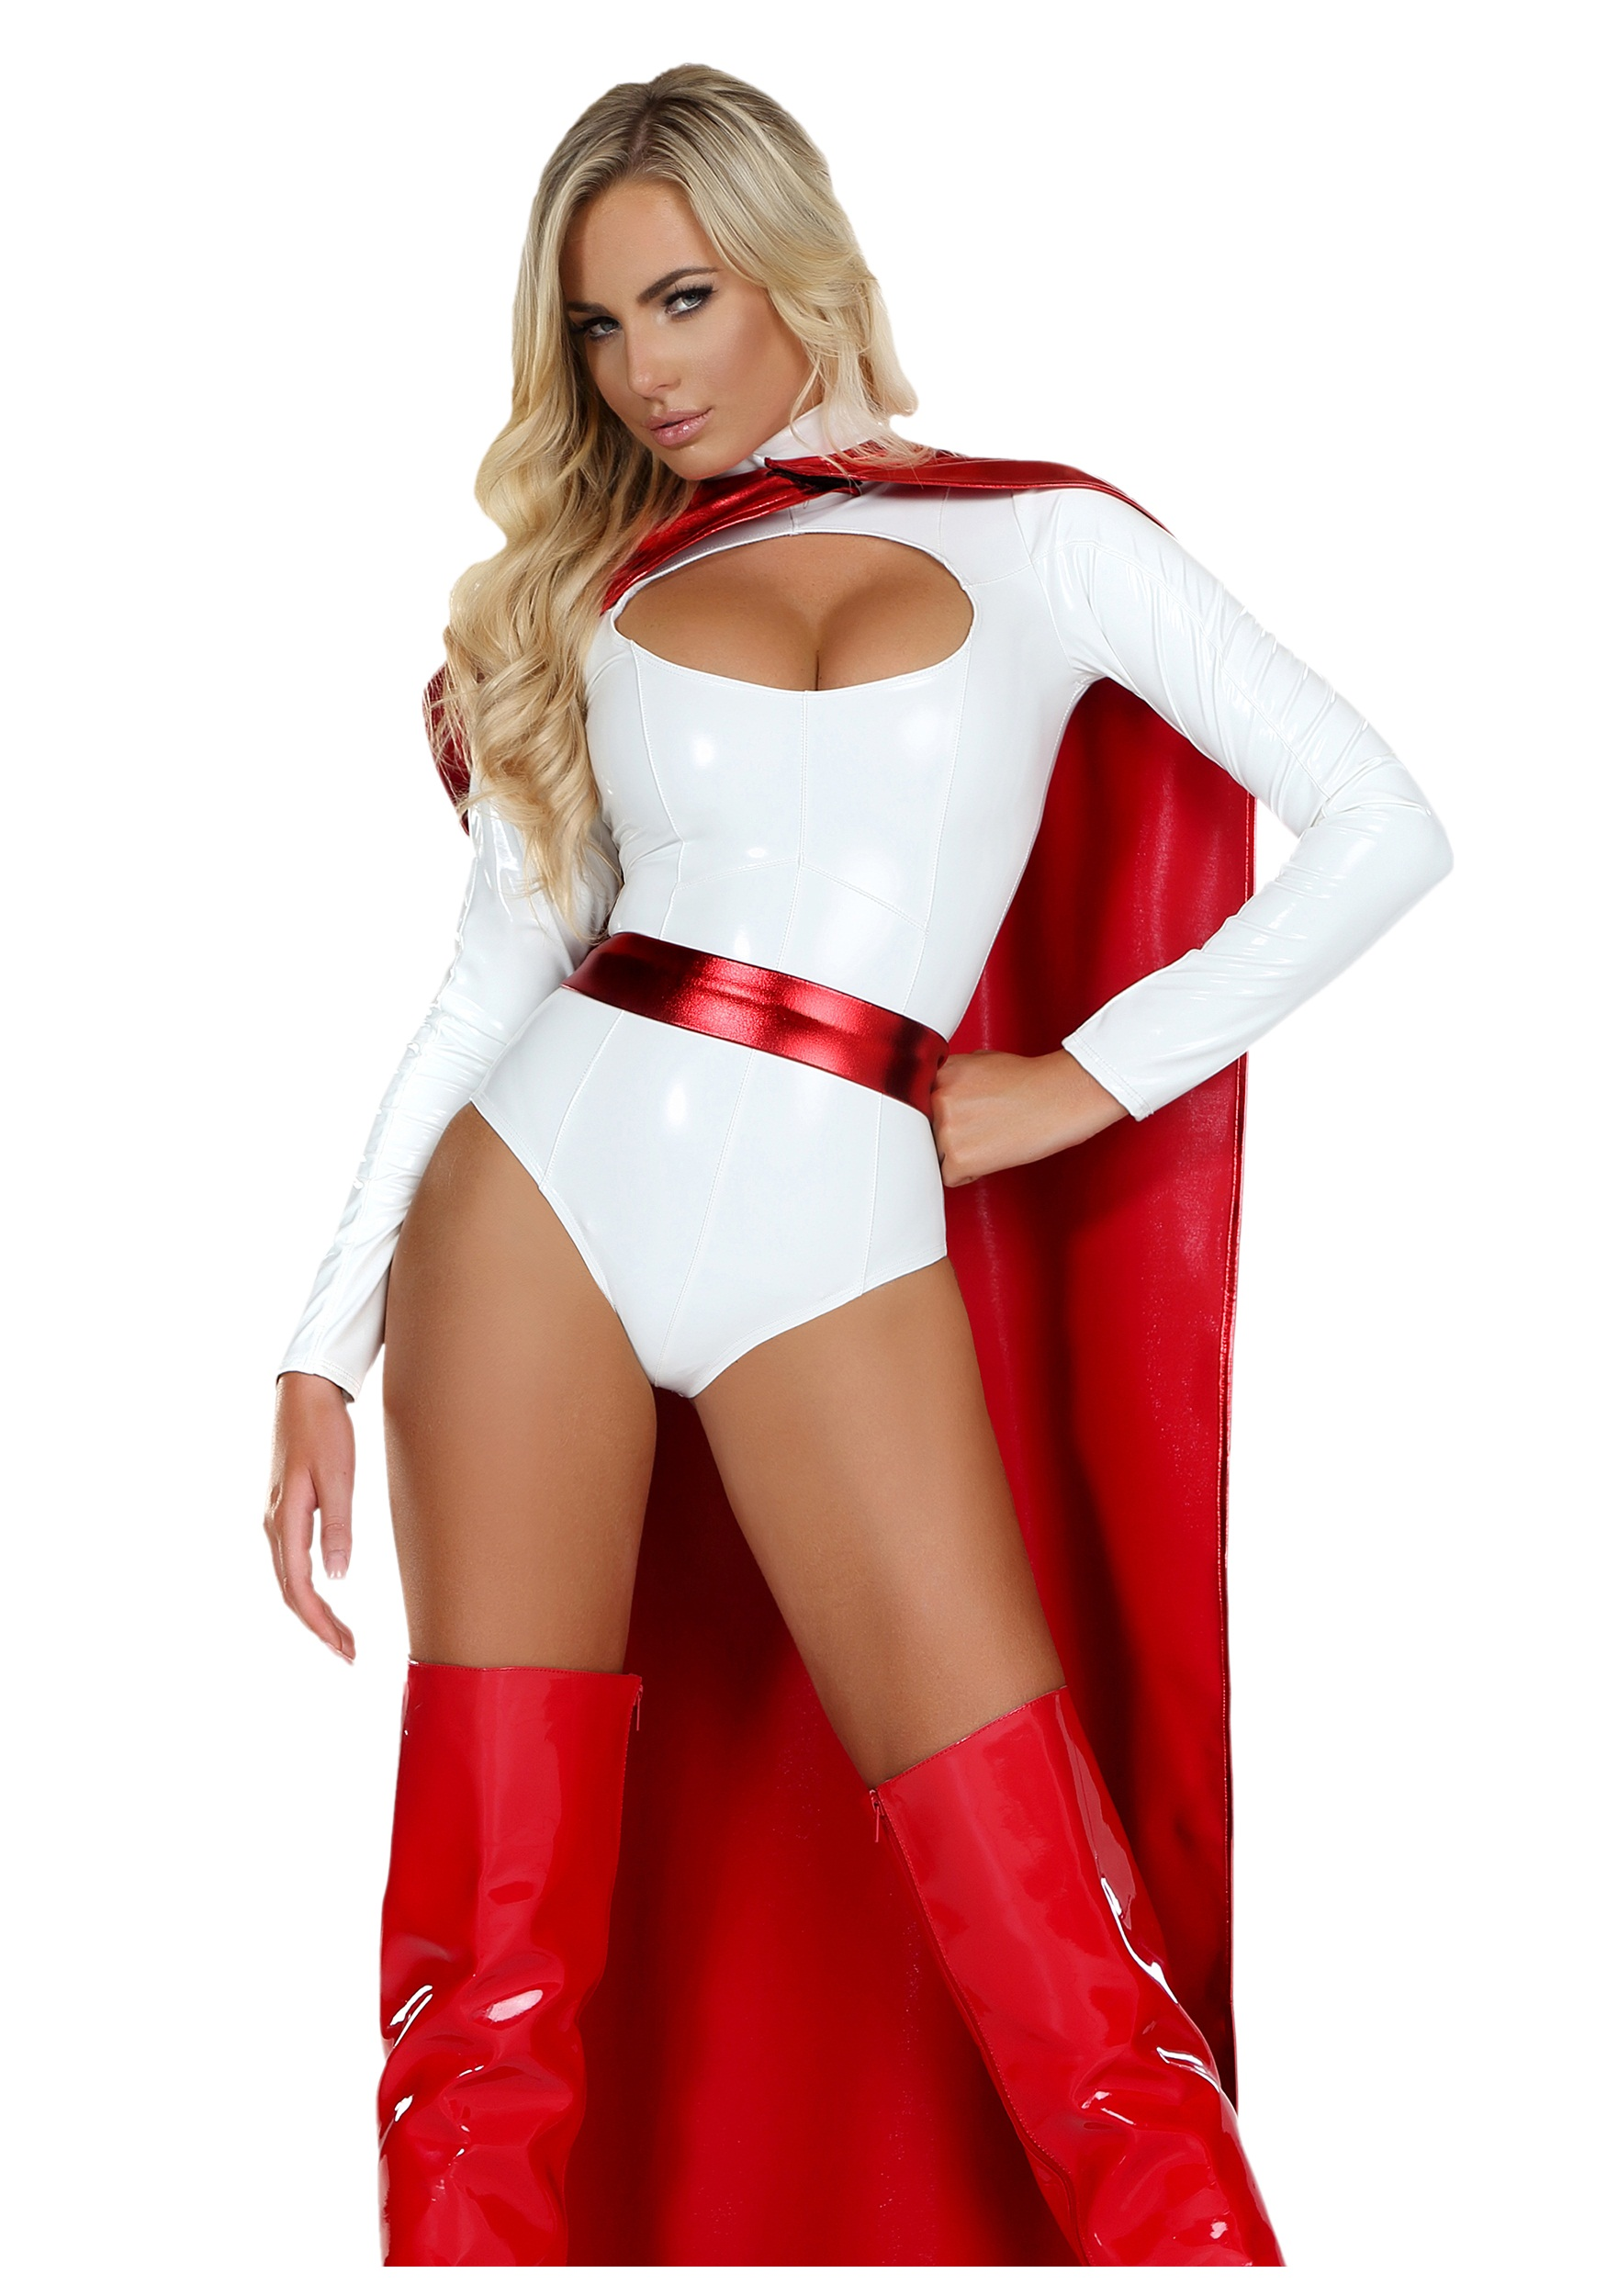 Womens Powerful Superhero Costume  sc 1 st  Halloween Costumes : superhero girl costumes  - Germanpascual.Com